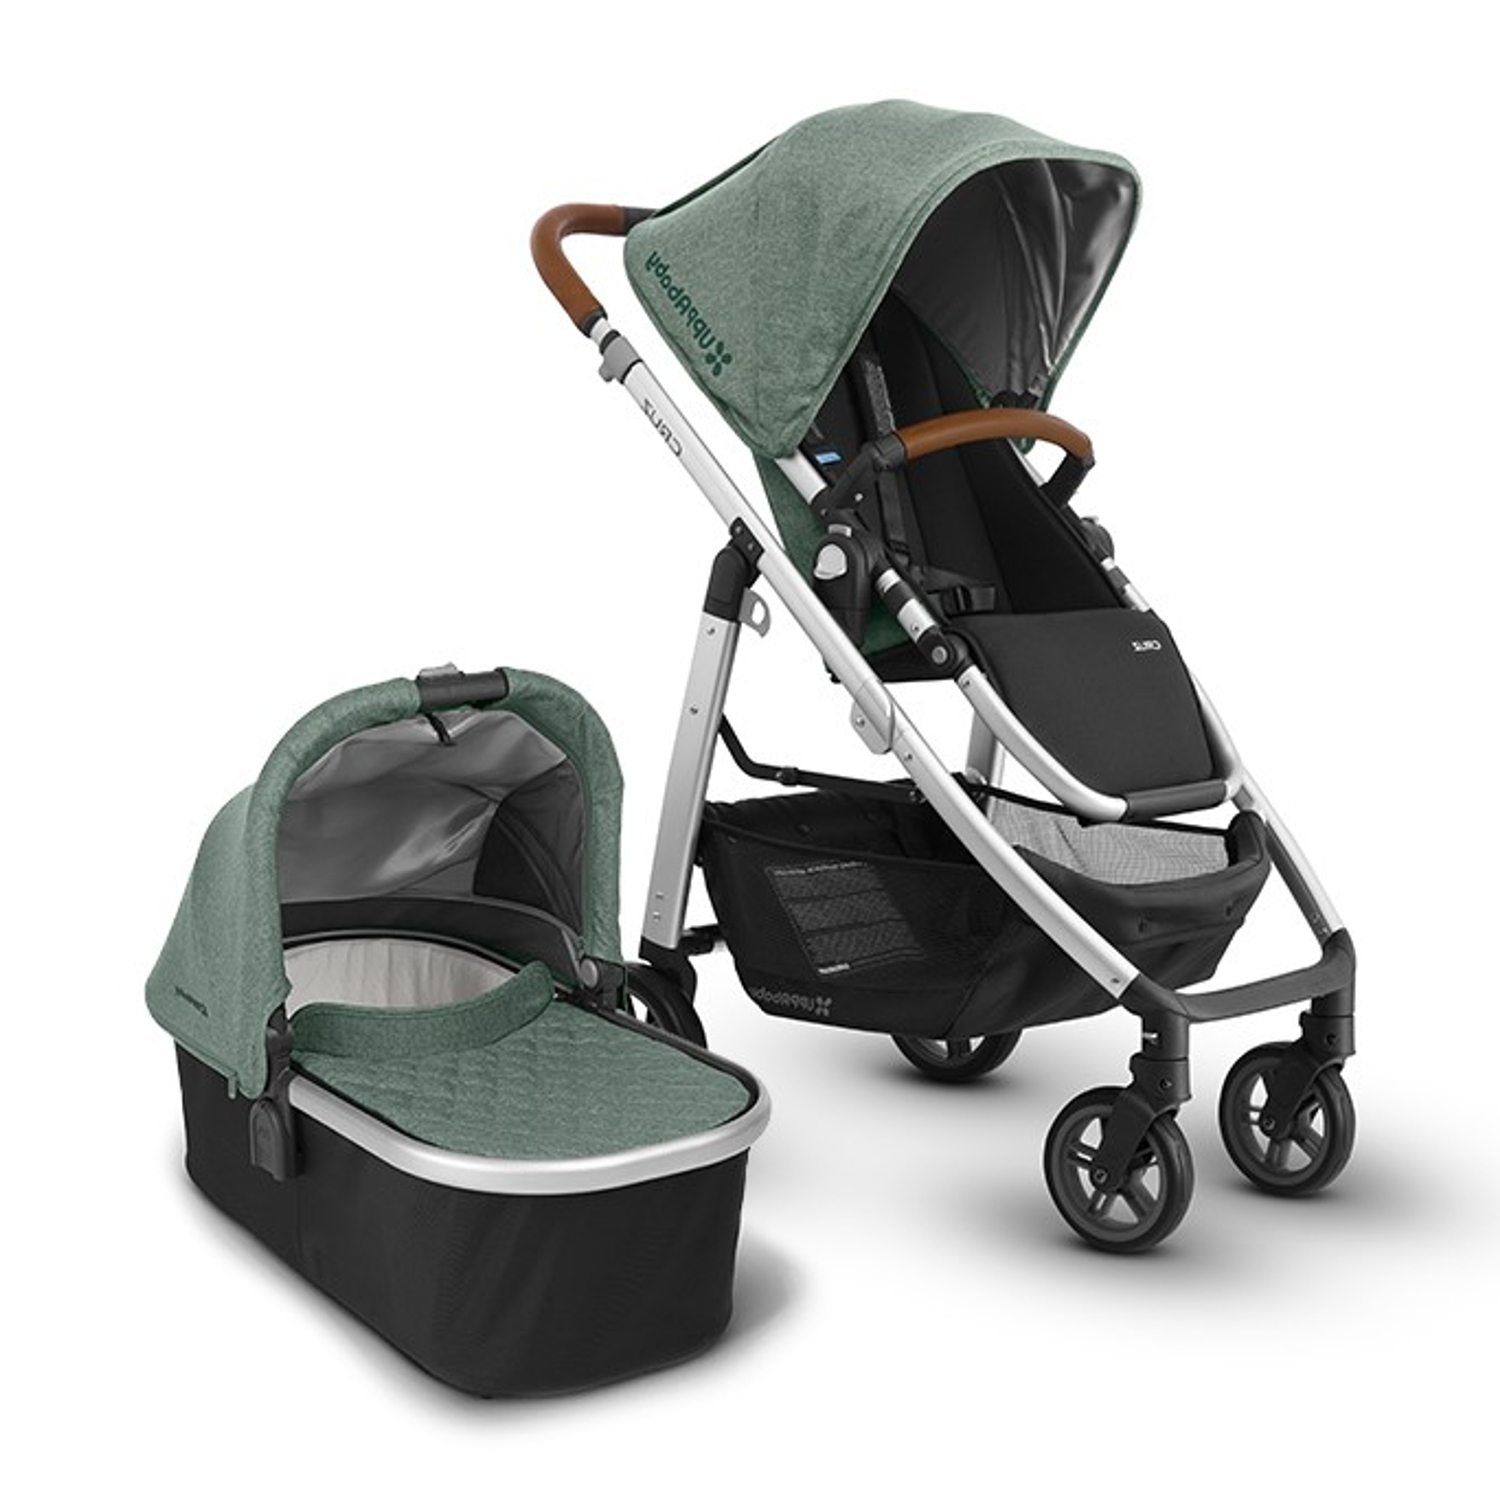 UPPAbaby CRUZ Kinderwagen 2-in-1 Emmett